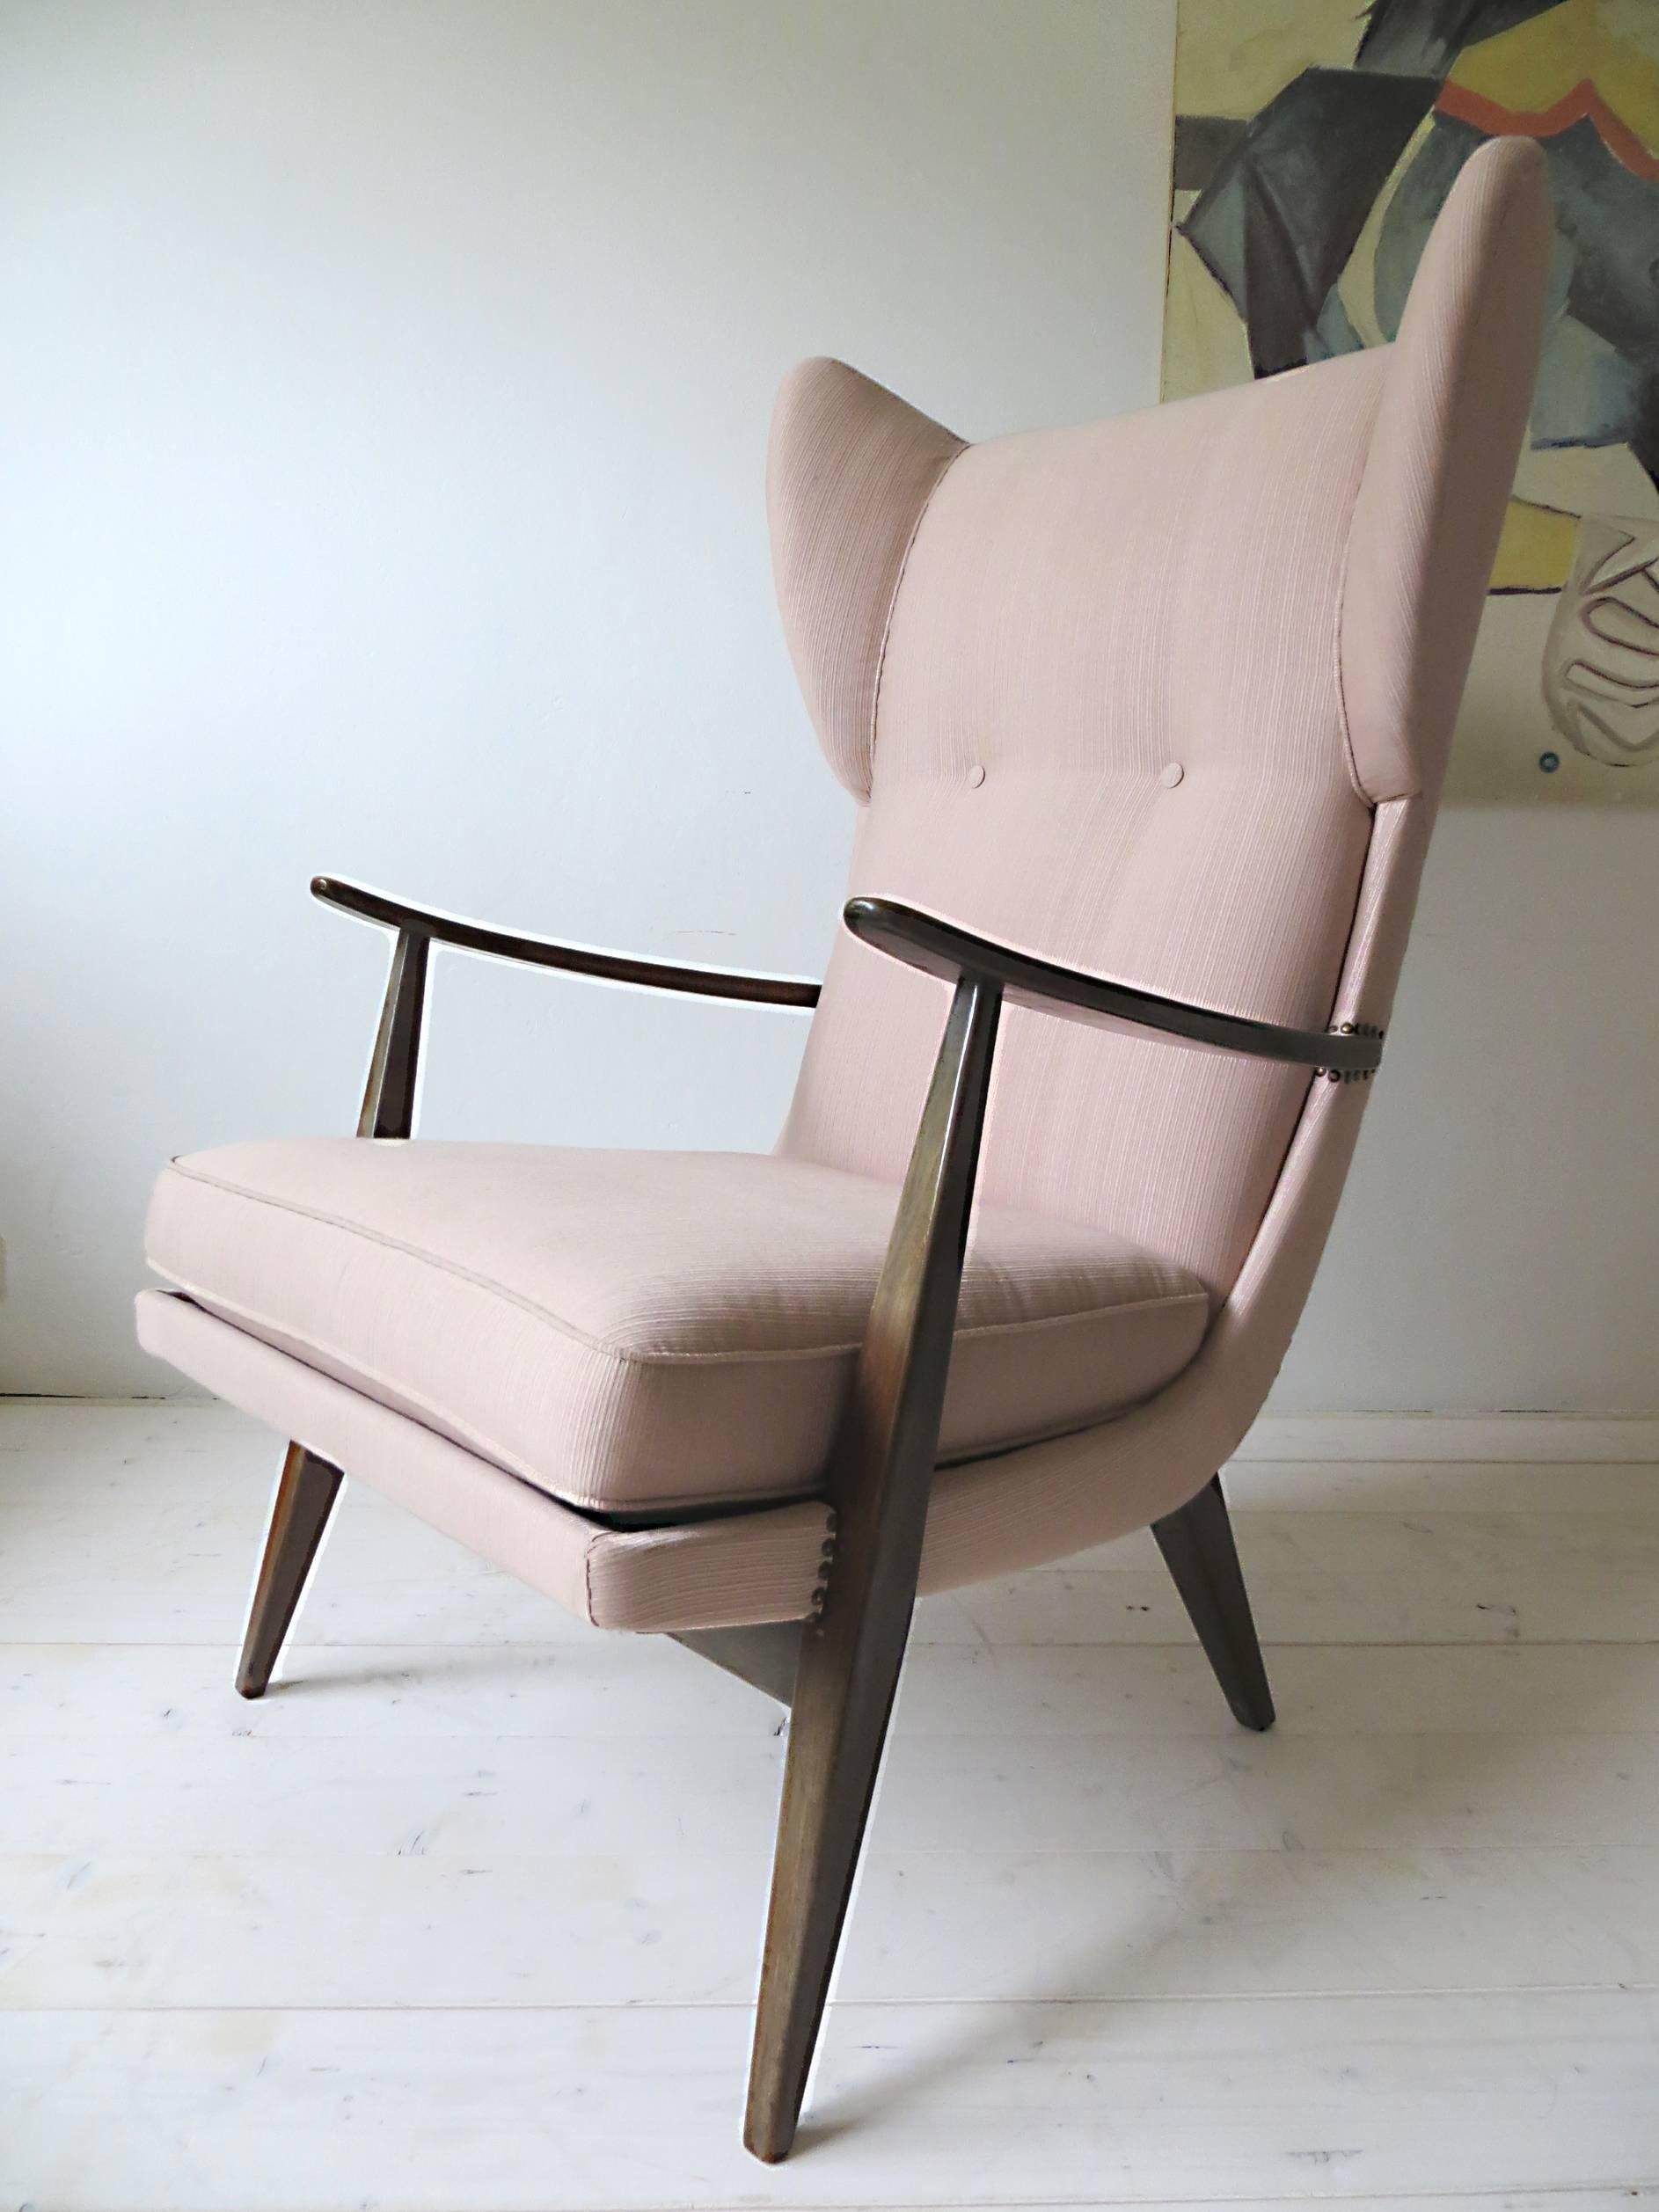 Knoll Sessel Gebraucht 1950s Knoll Antimott Wingback Chair By Walter Knoll In Fine Old Rose